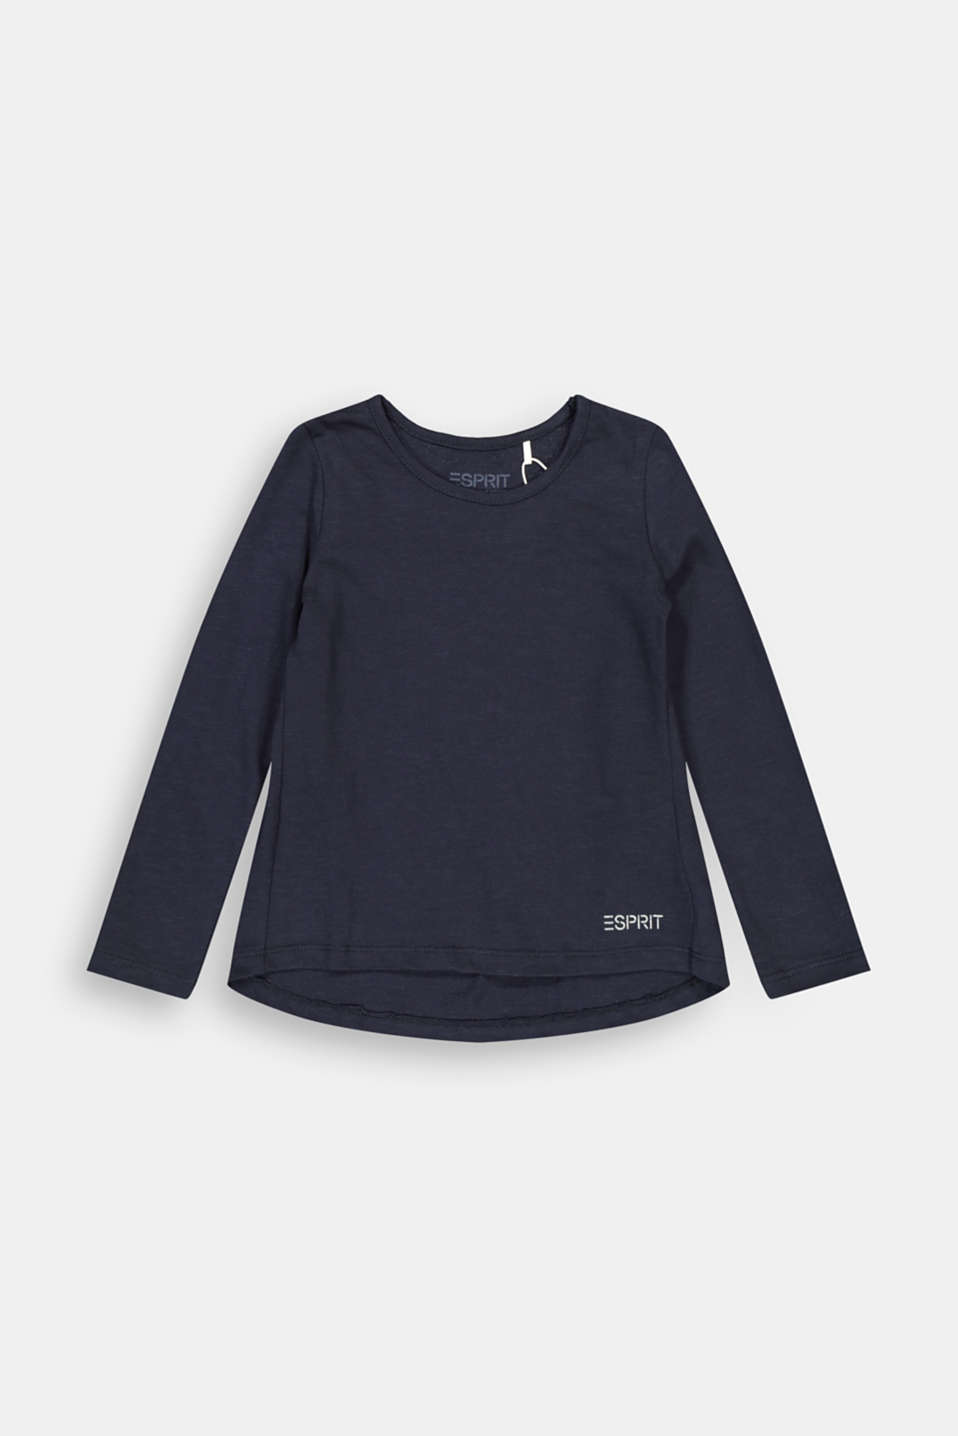 Esprit - Long sleeve top made of 100% cotton